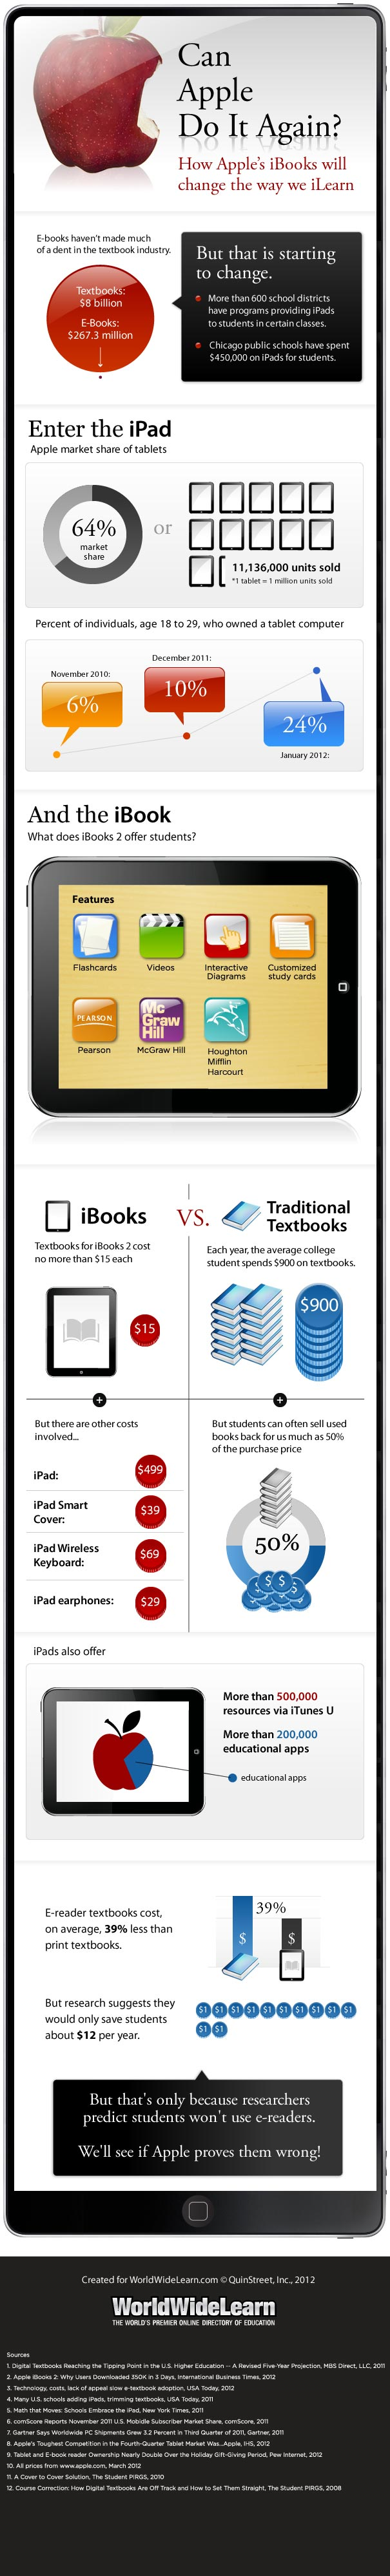 Infographic: Can Apple iPad and iBooks revolutionize the textbook industry?